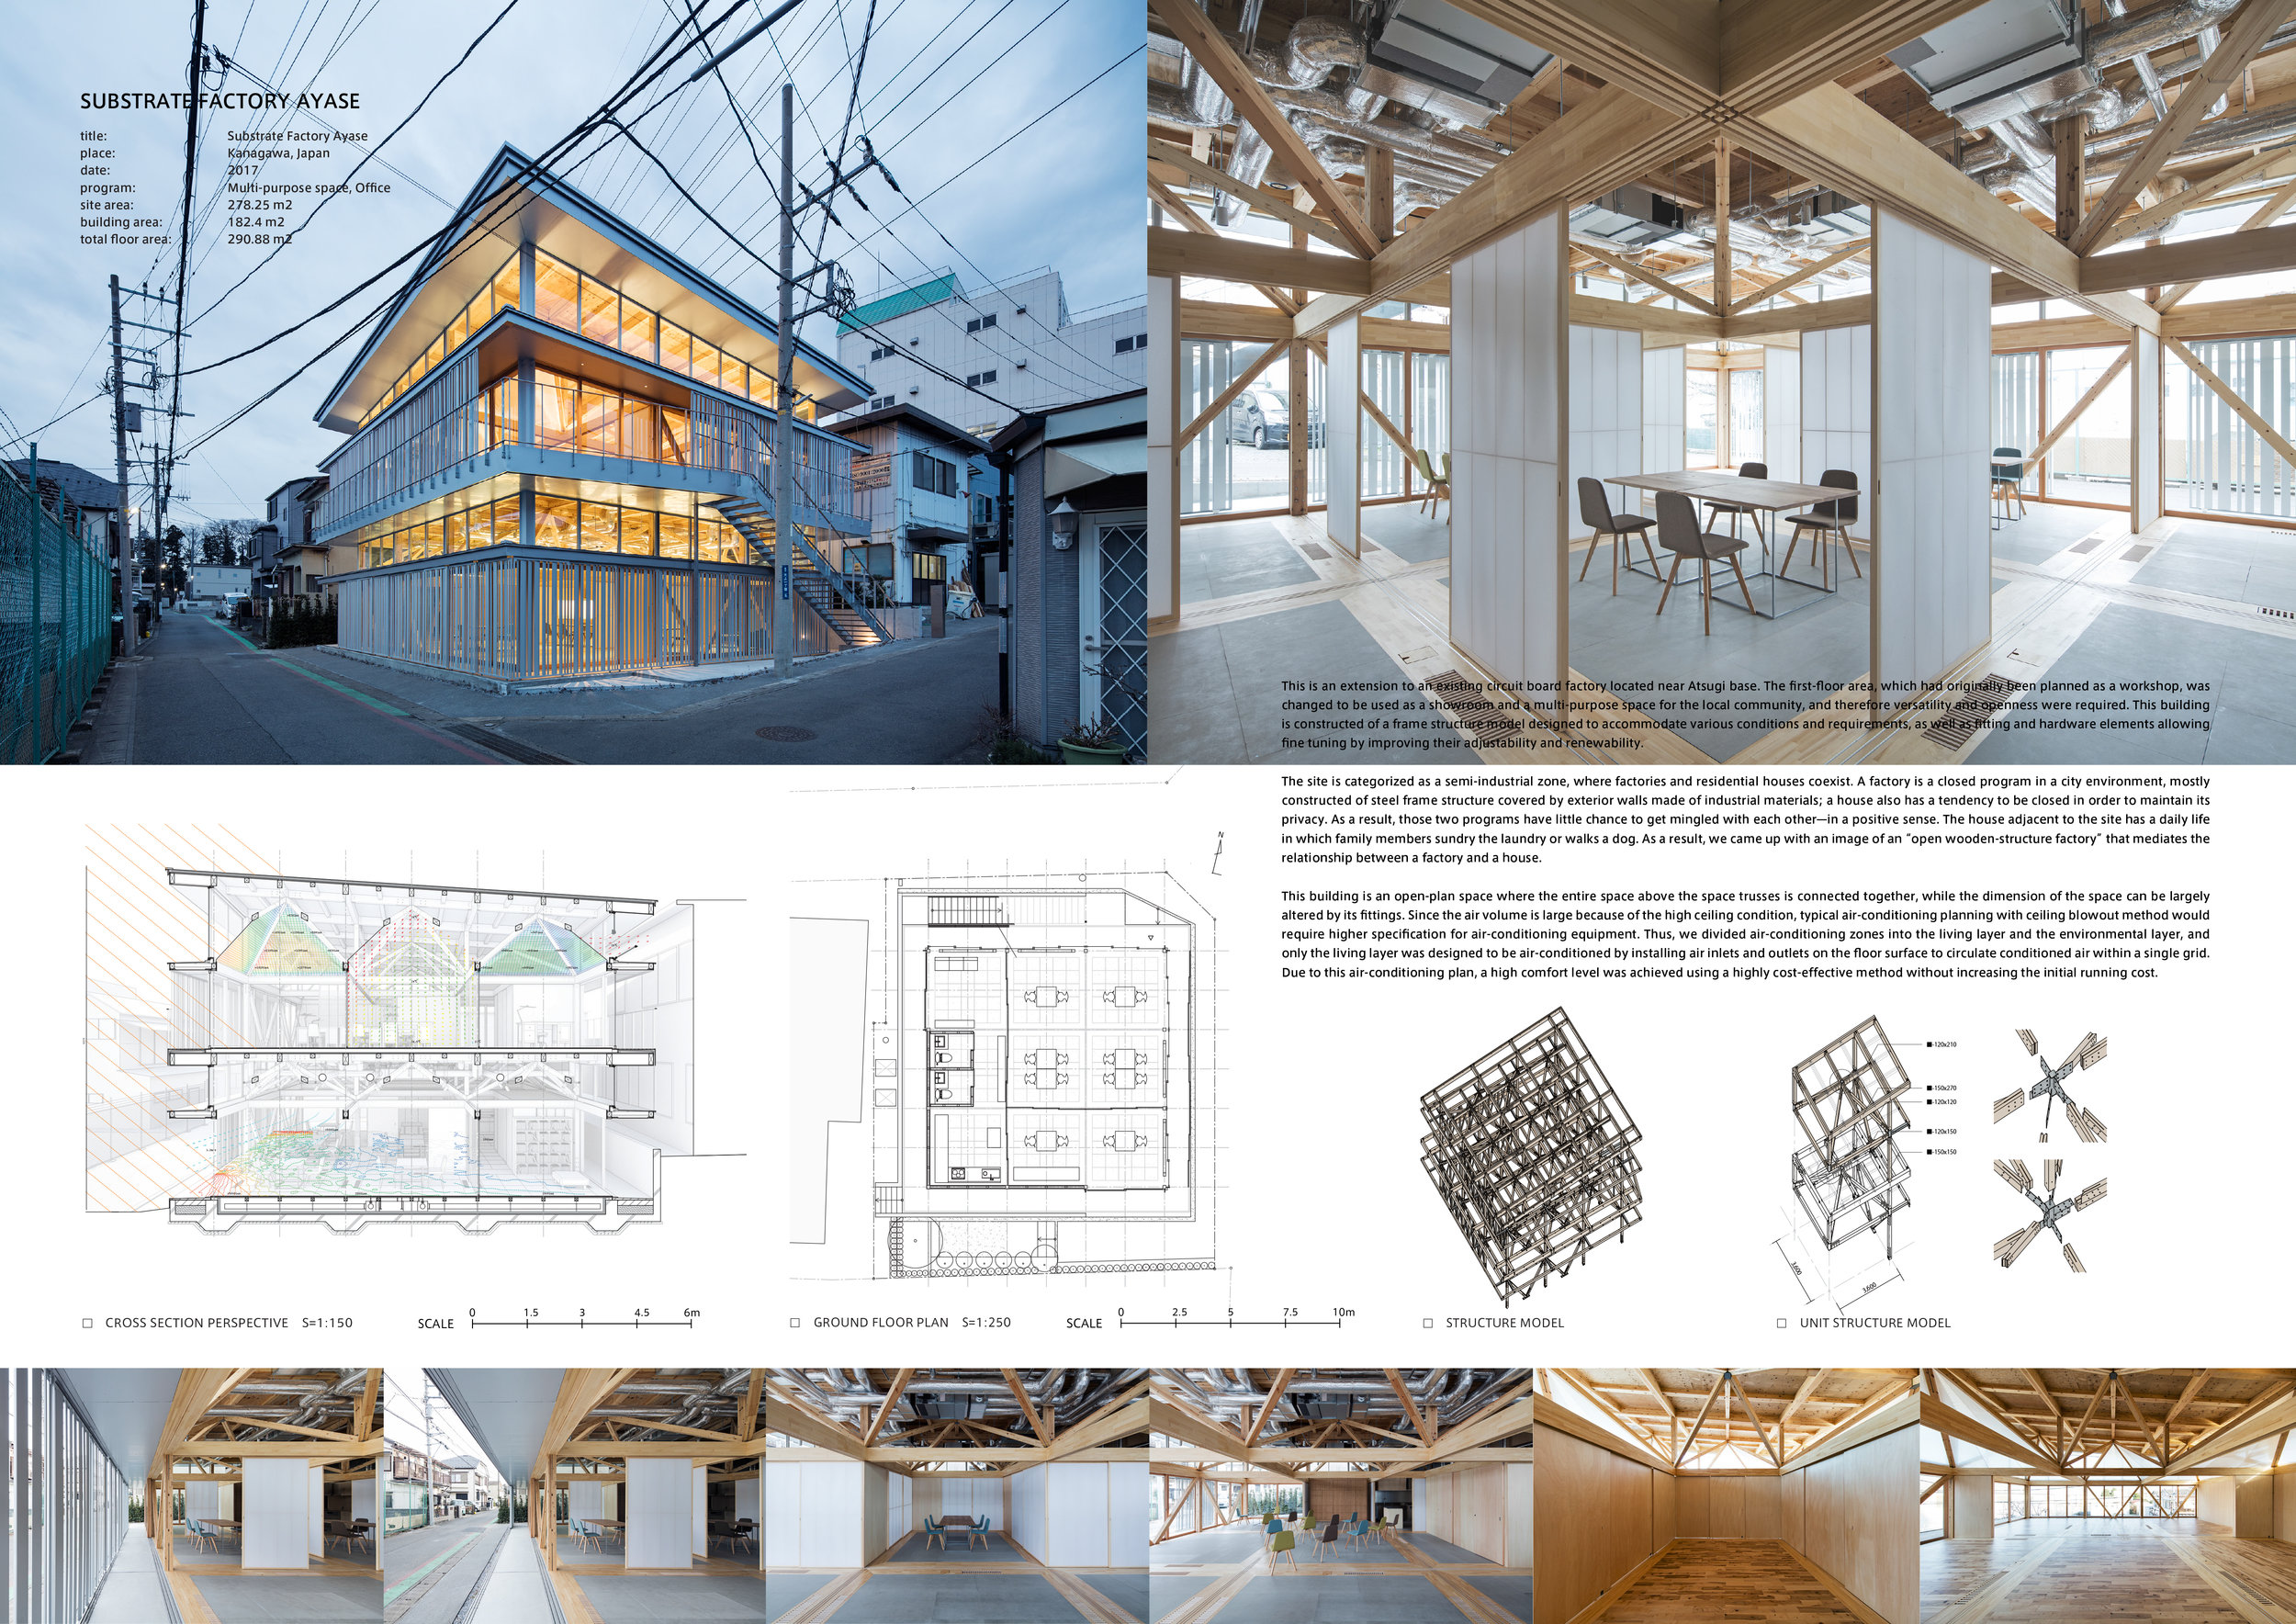 Project Name: Substrate Factory Ayase - Design by: Aki Hamada Architects IncArchitecture Division: OfficeWebsite: http://aki-hamada.com/